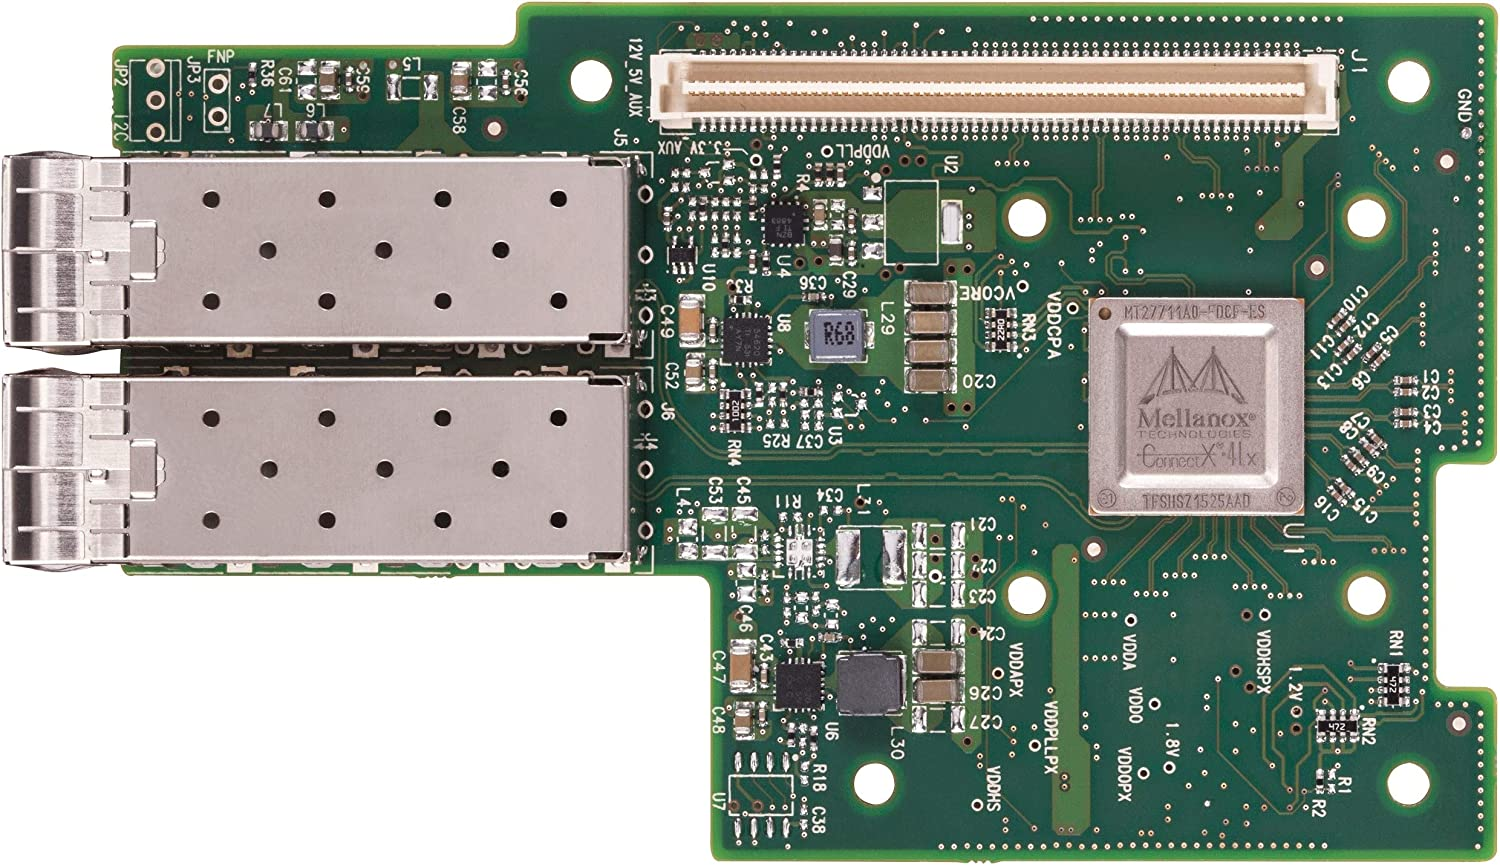 4 Lx EN Adapter Card for Open Compute Project OCP Mellanox ConnectX